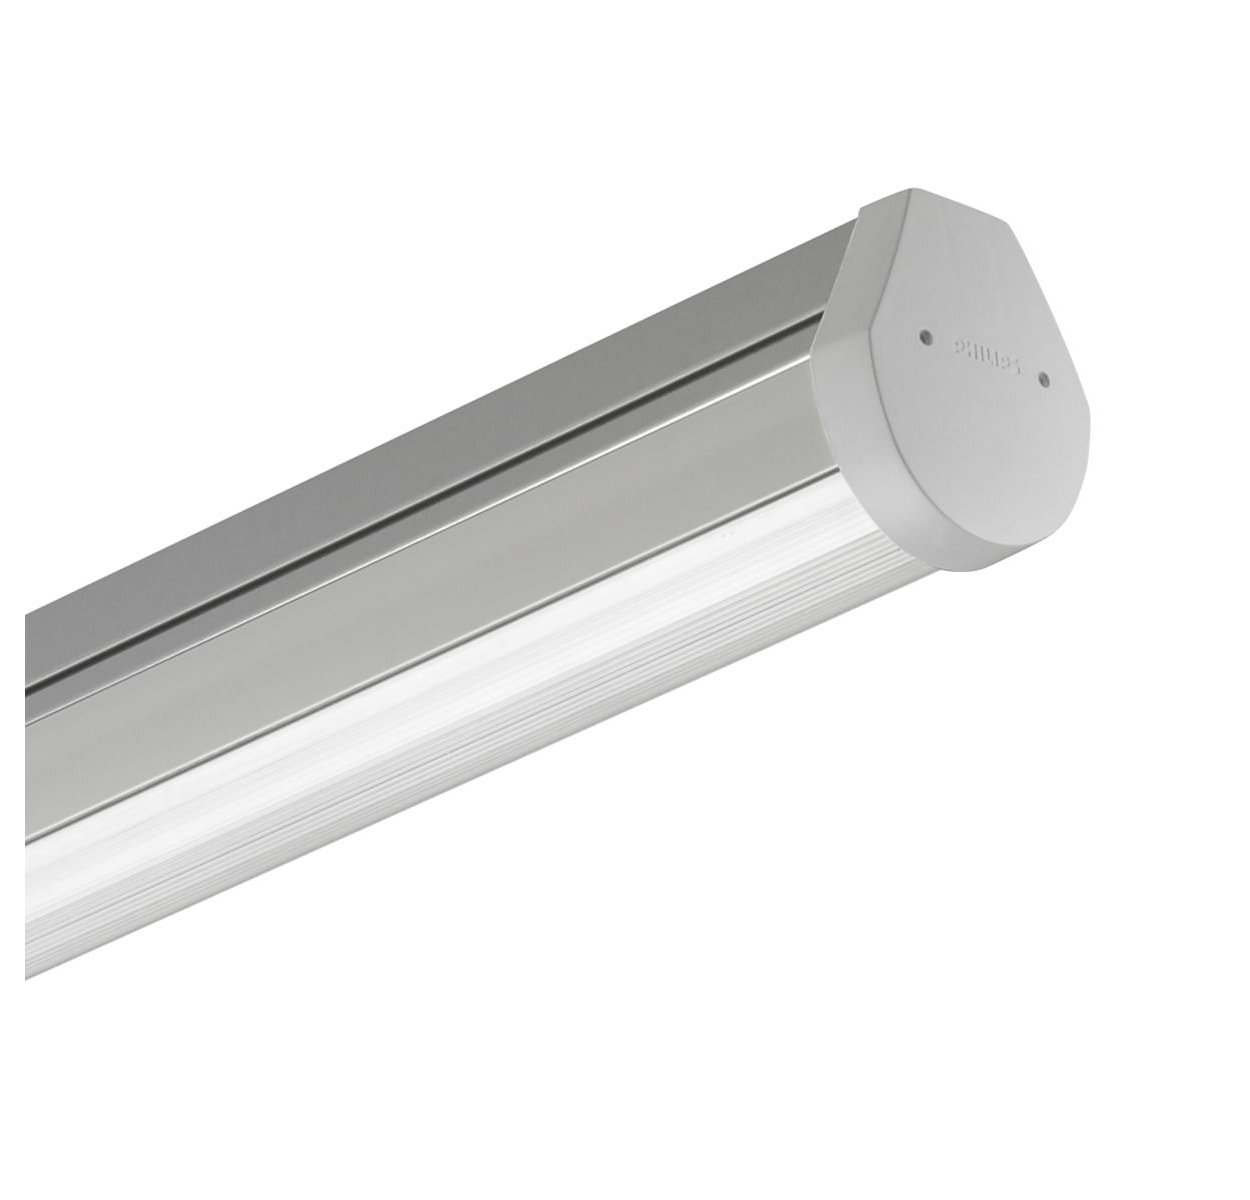 Maxos LED Performer: illuminazione efficiente e precisa